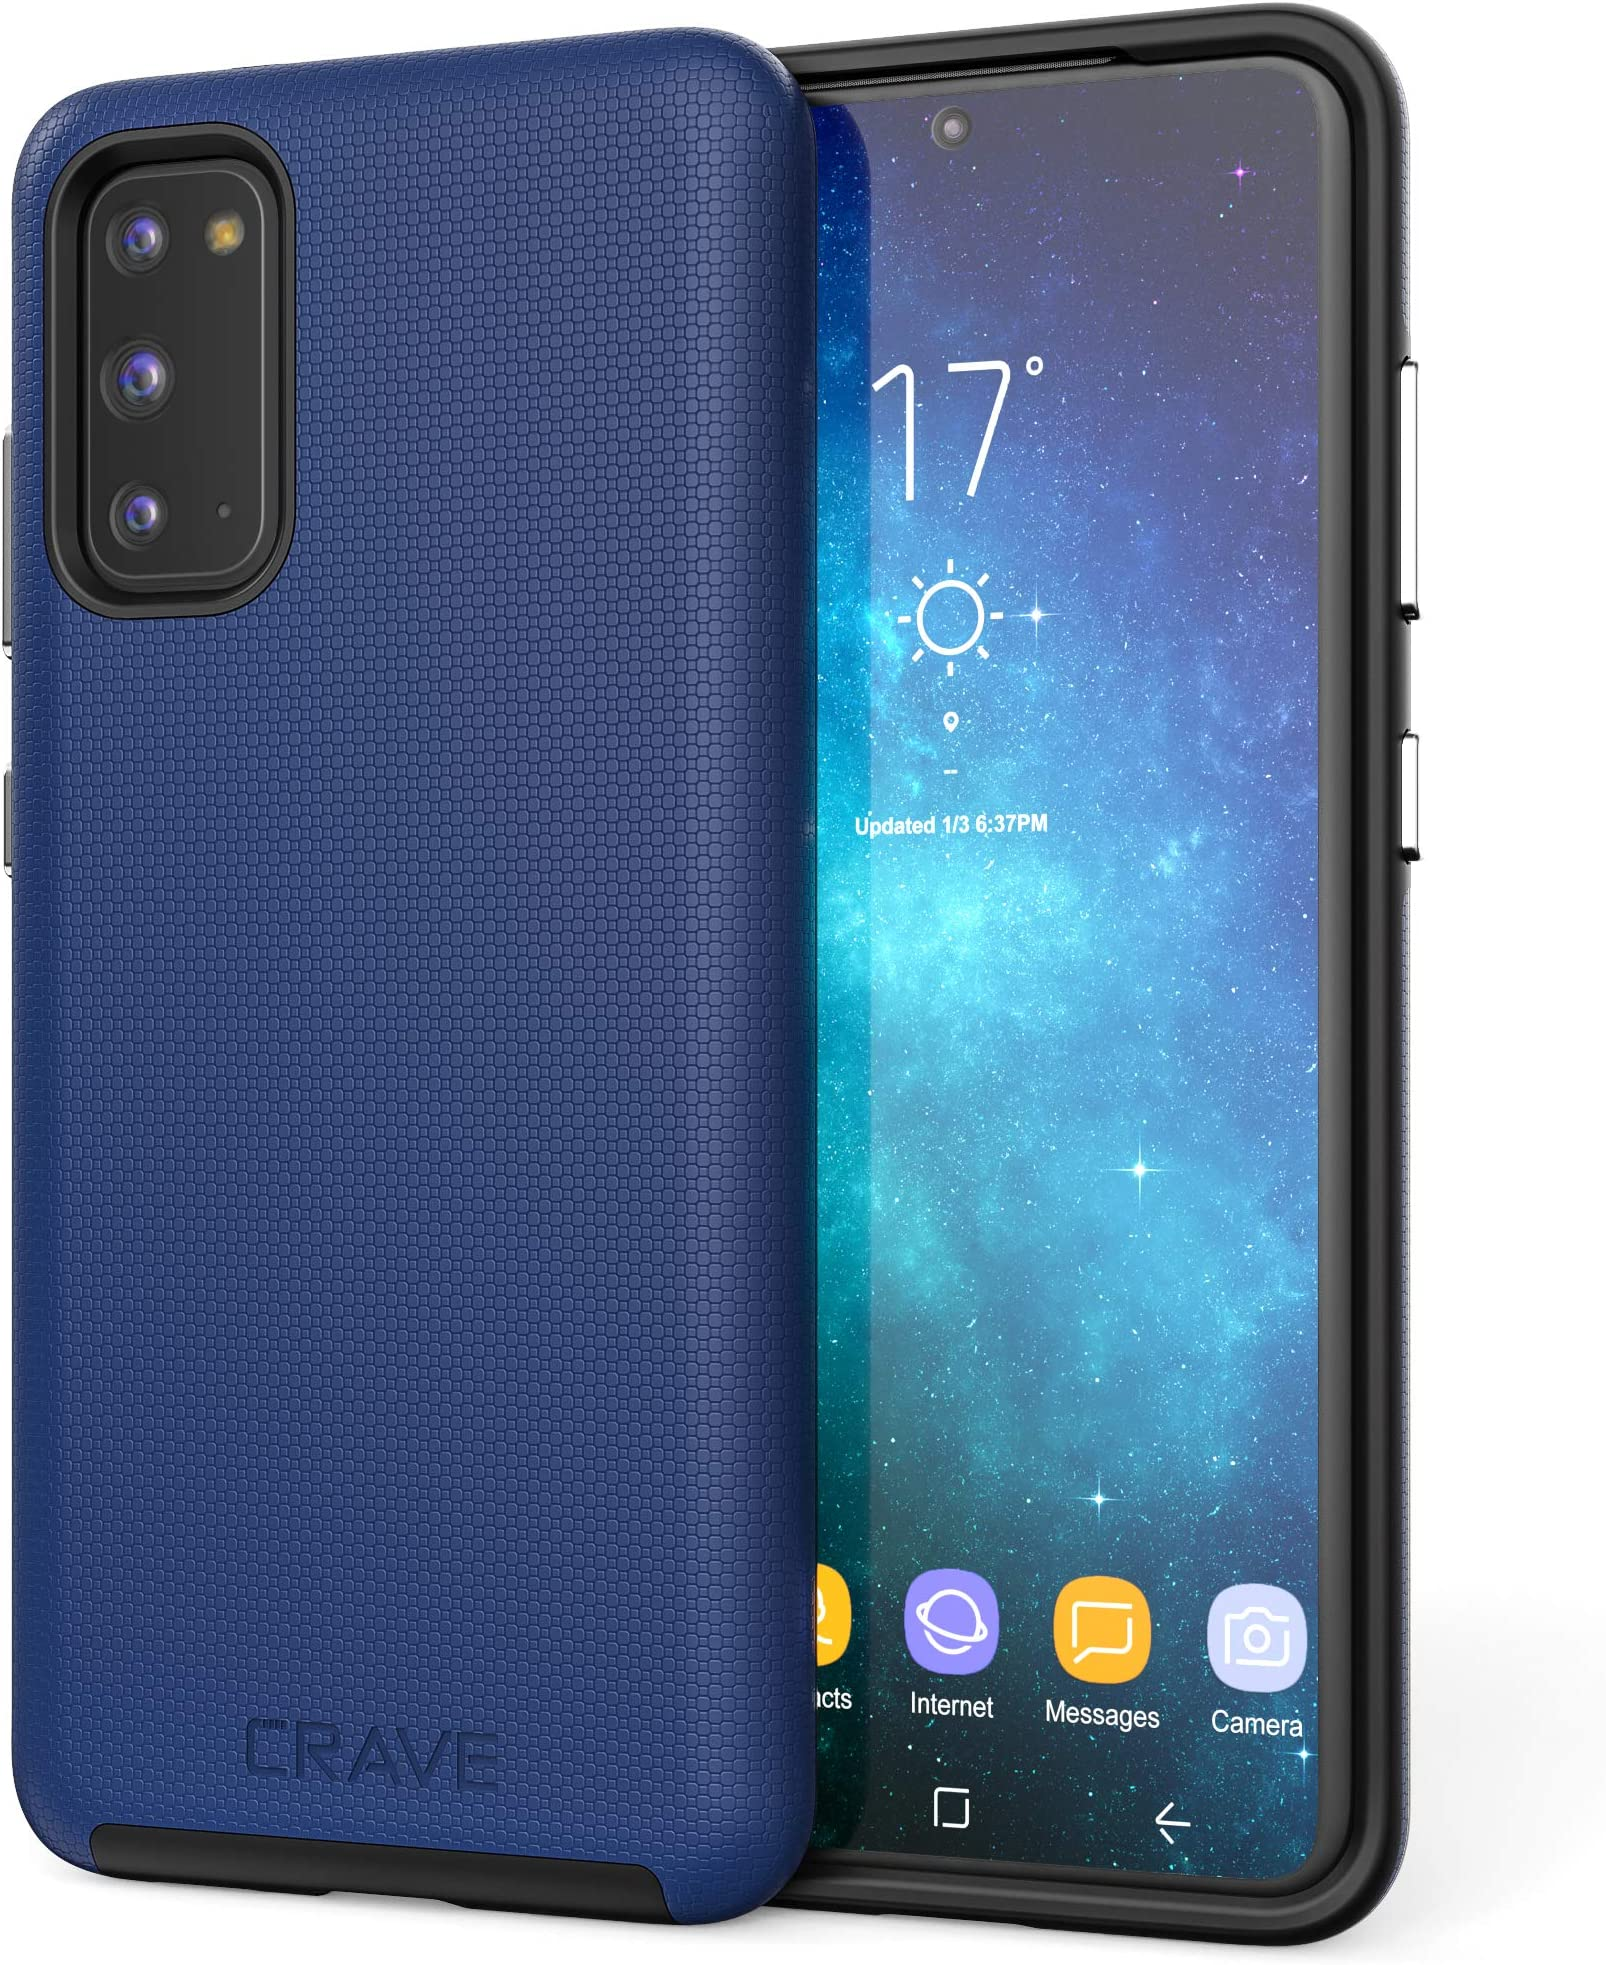 Crave Dual Guard for Samsung Galaxy S20 Case, Shockproof Protection Dual Layer Case for Samsung Galaxy S20, S20 5G - Navy